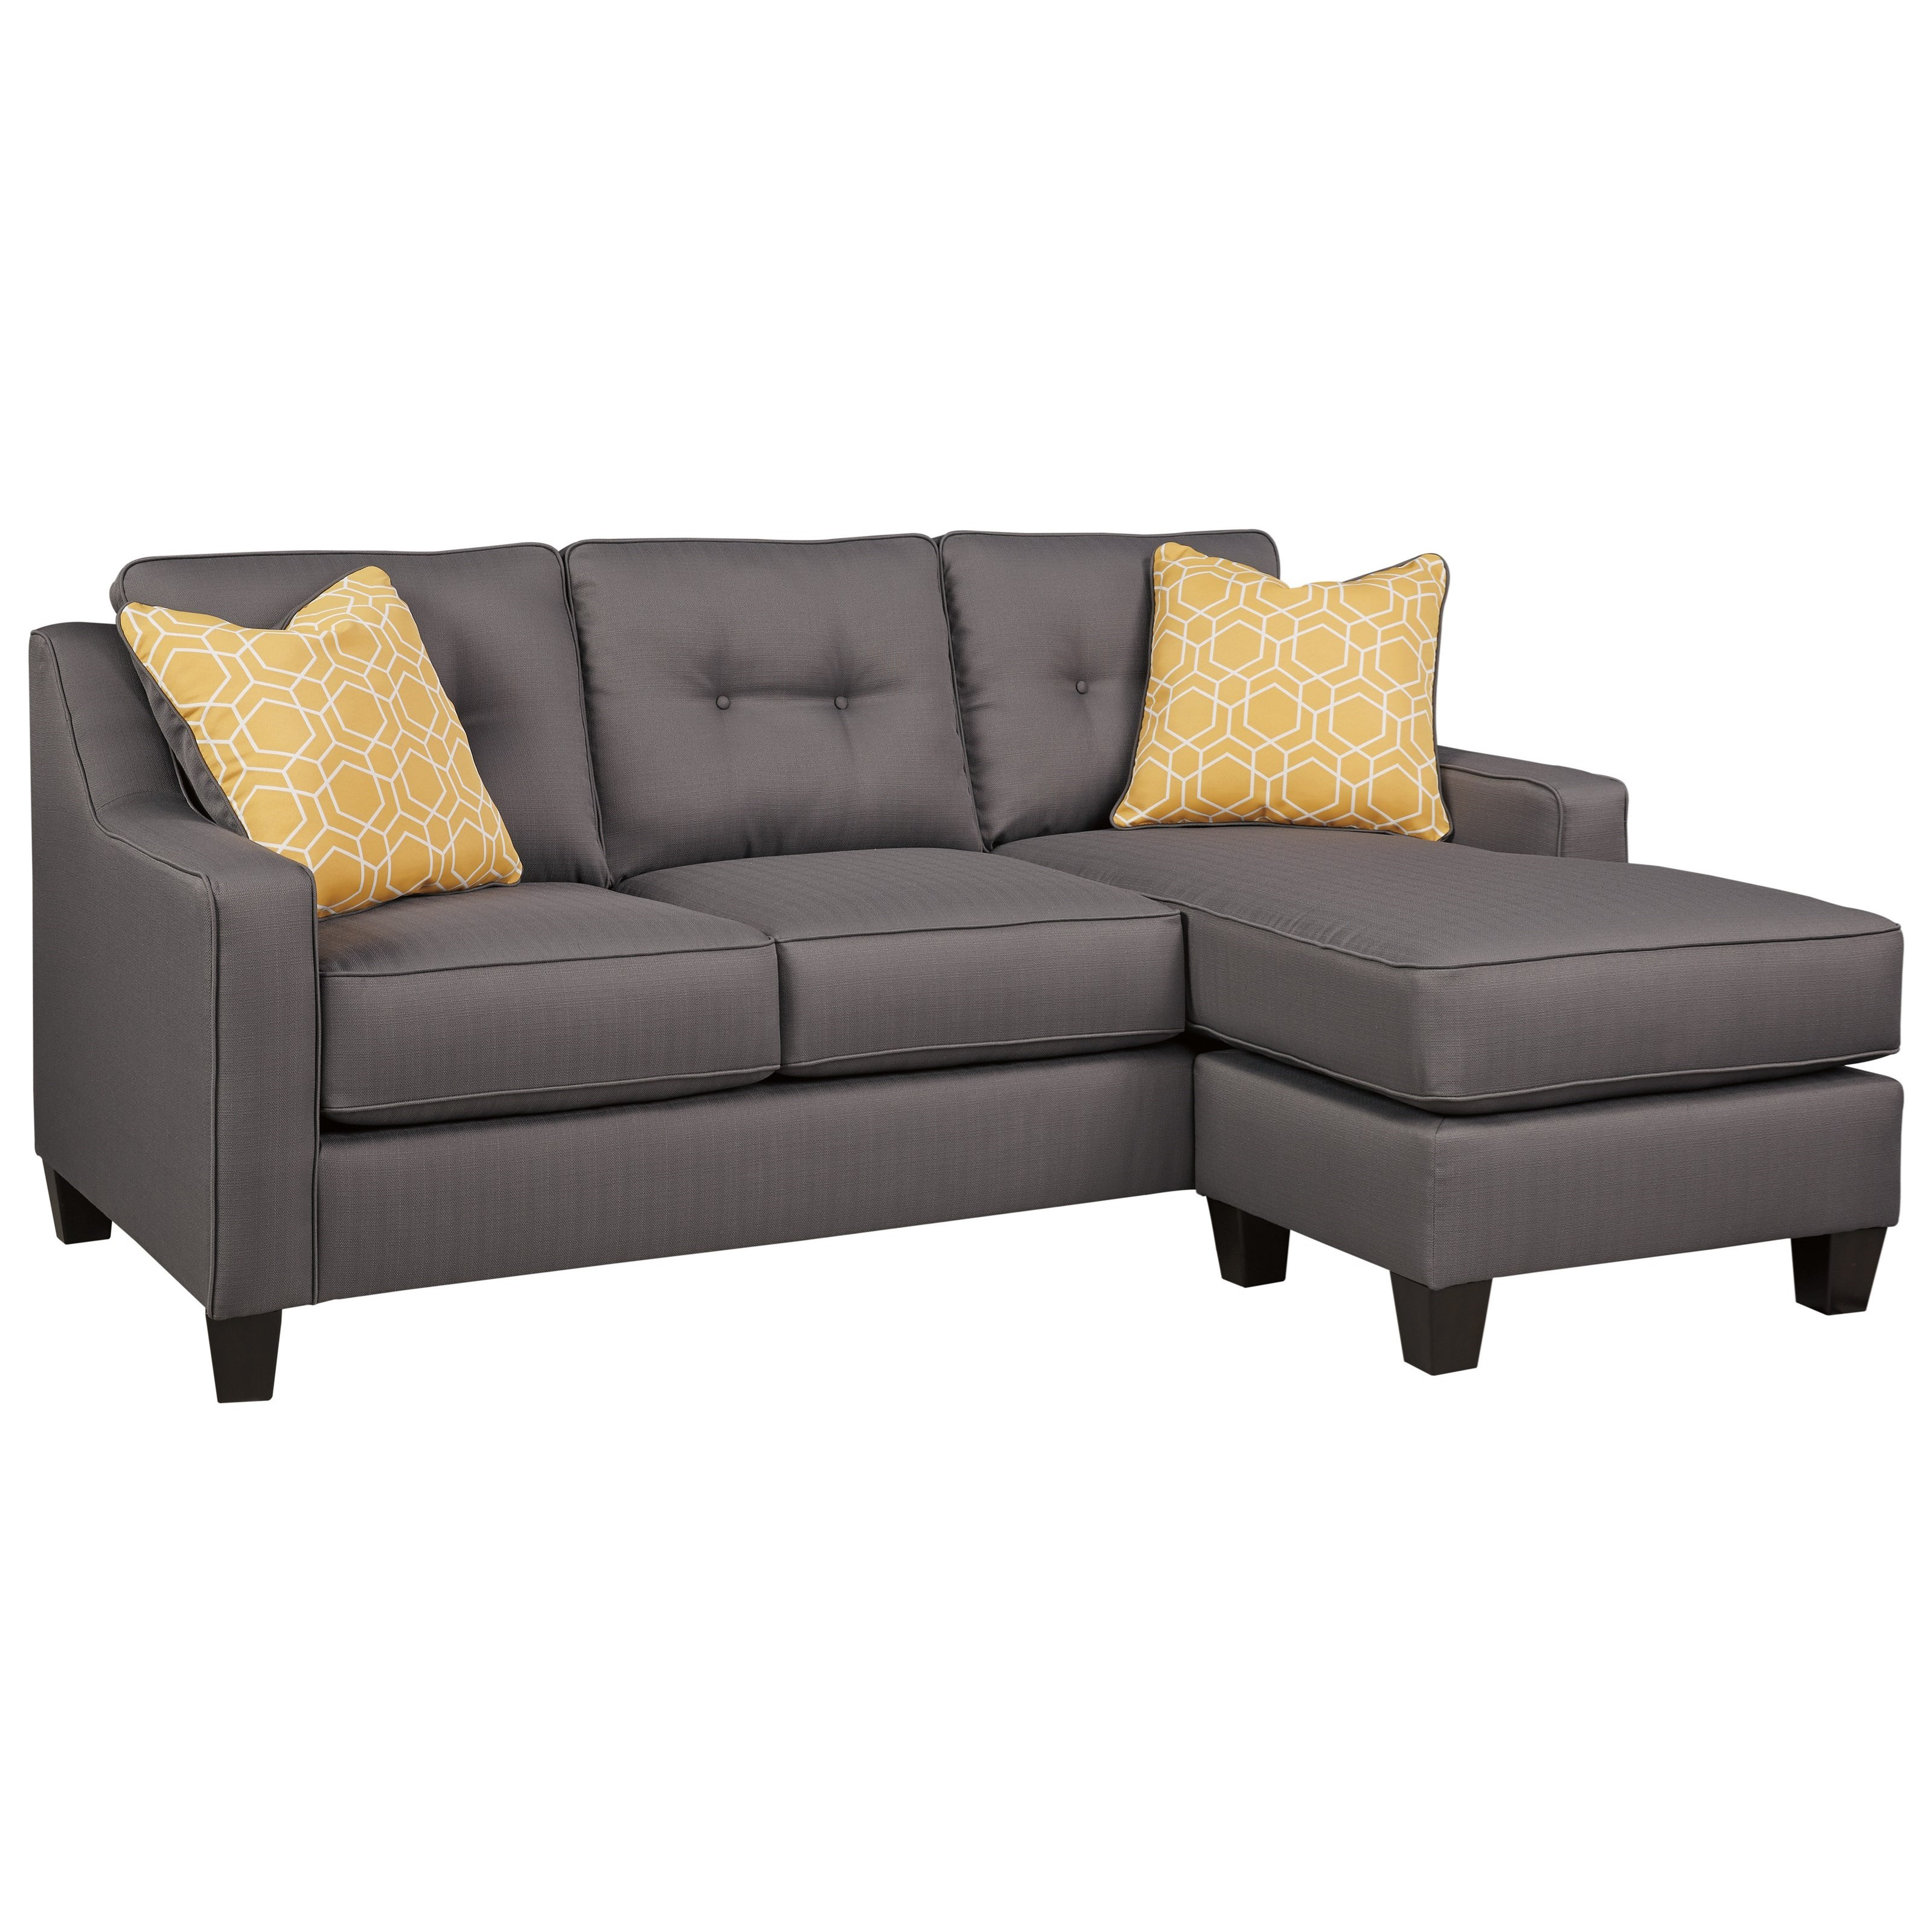 Benchcraft Aldie Nuvella Sofa Chaise - Item Number: 6870218